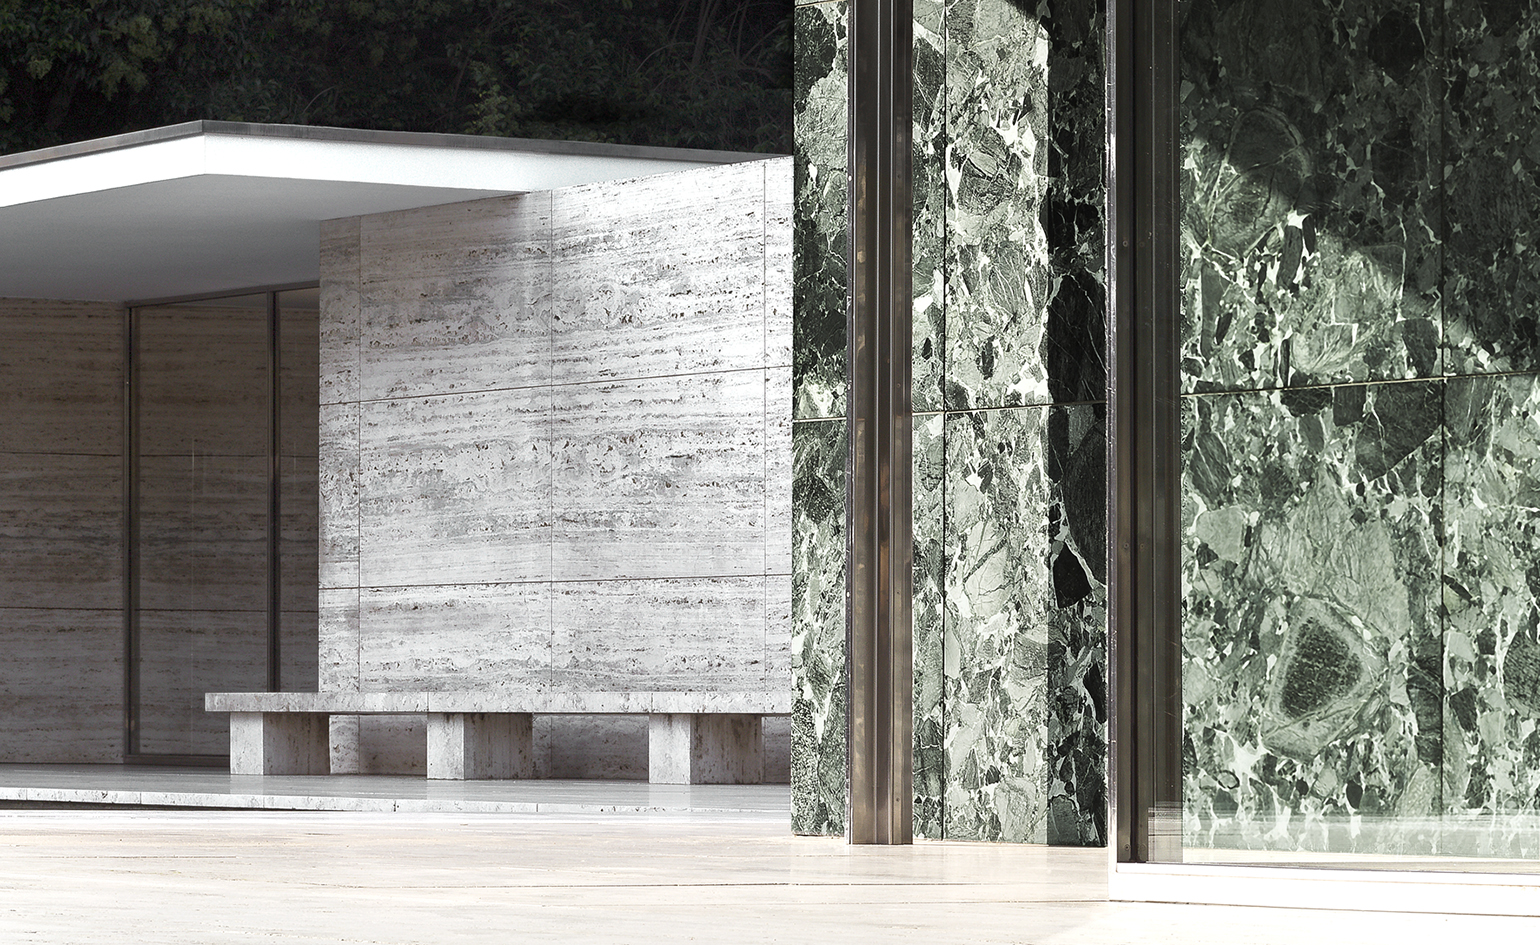 mies van der rohe 39 s barcelona pavilion hits 30 years wallpaper. Black Bedroom Furniture Sets. Home Design Ideas